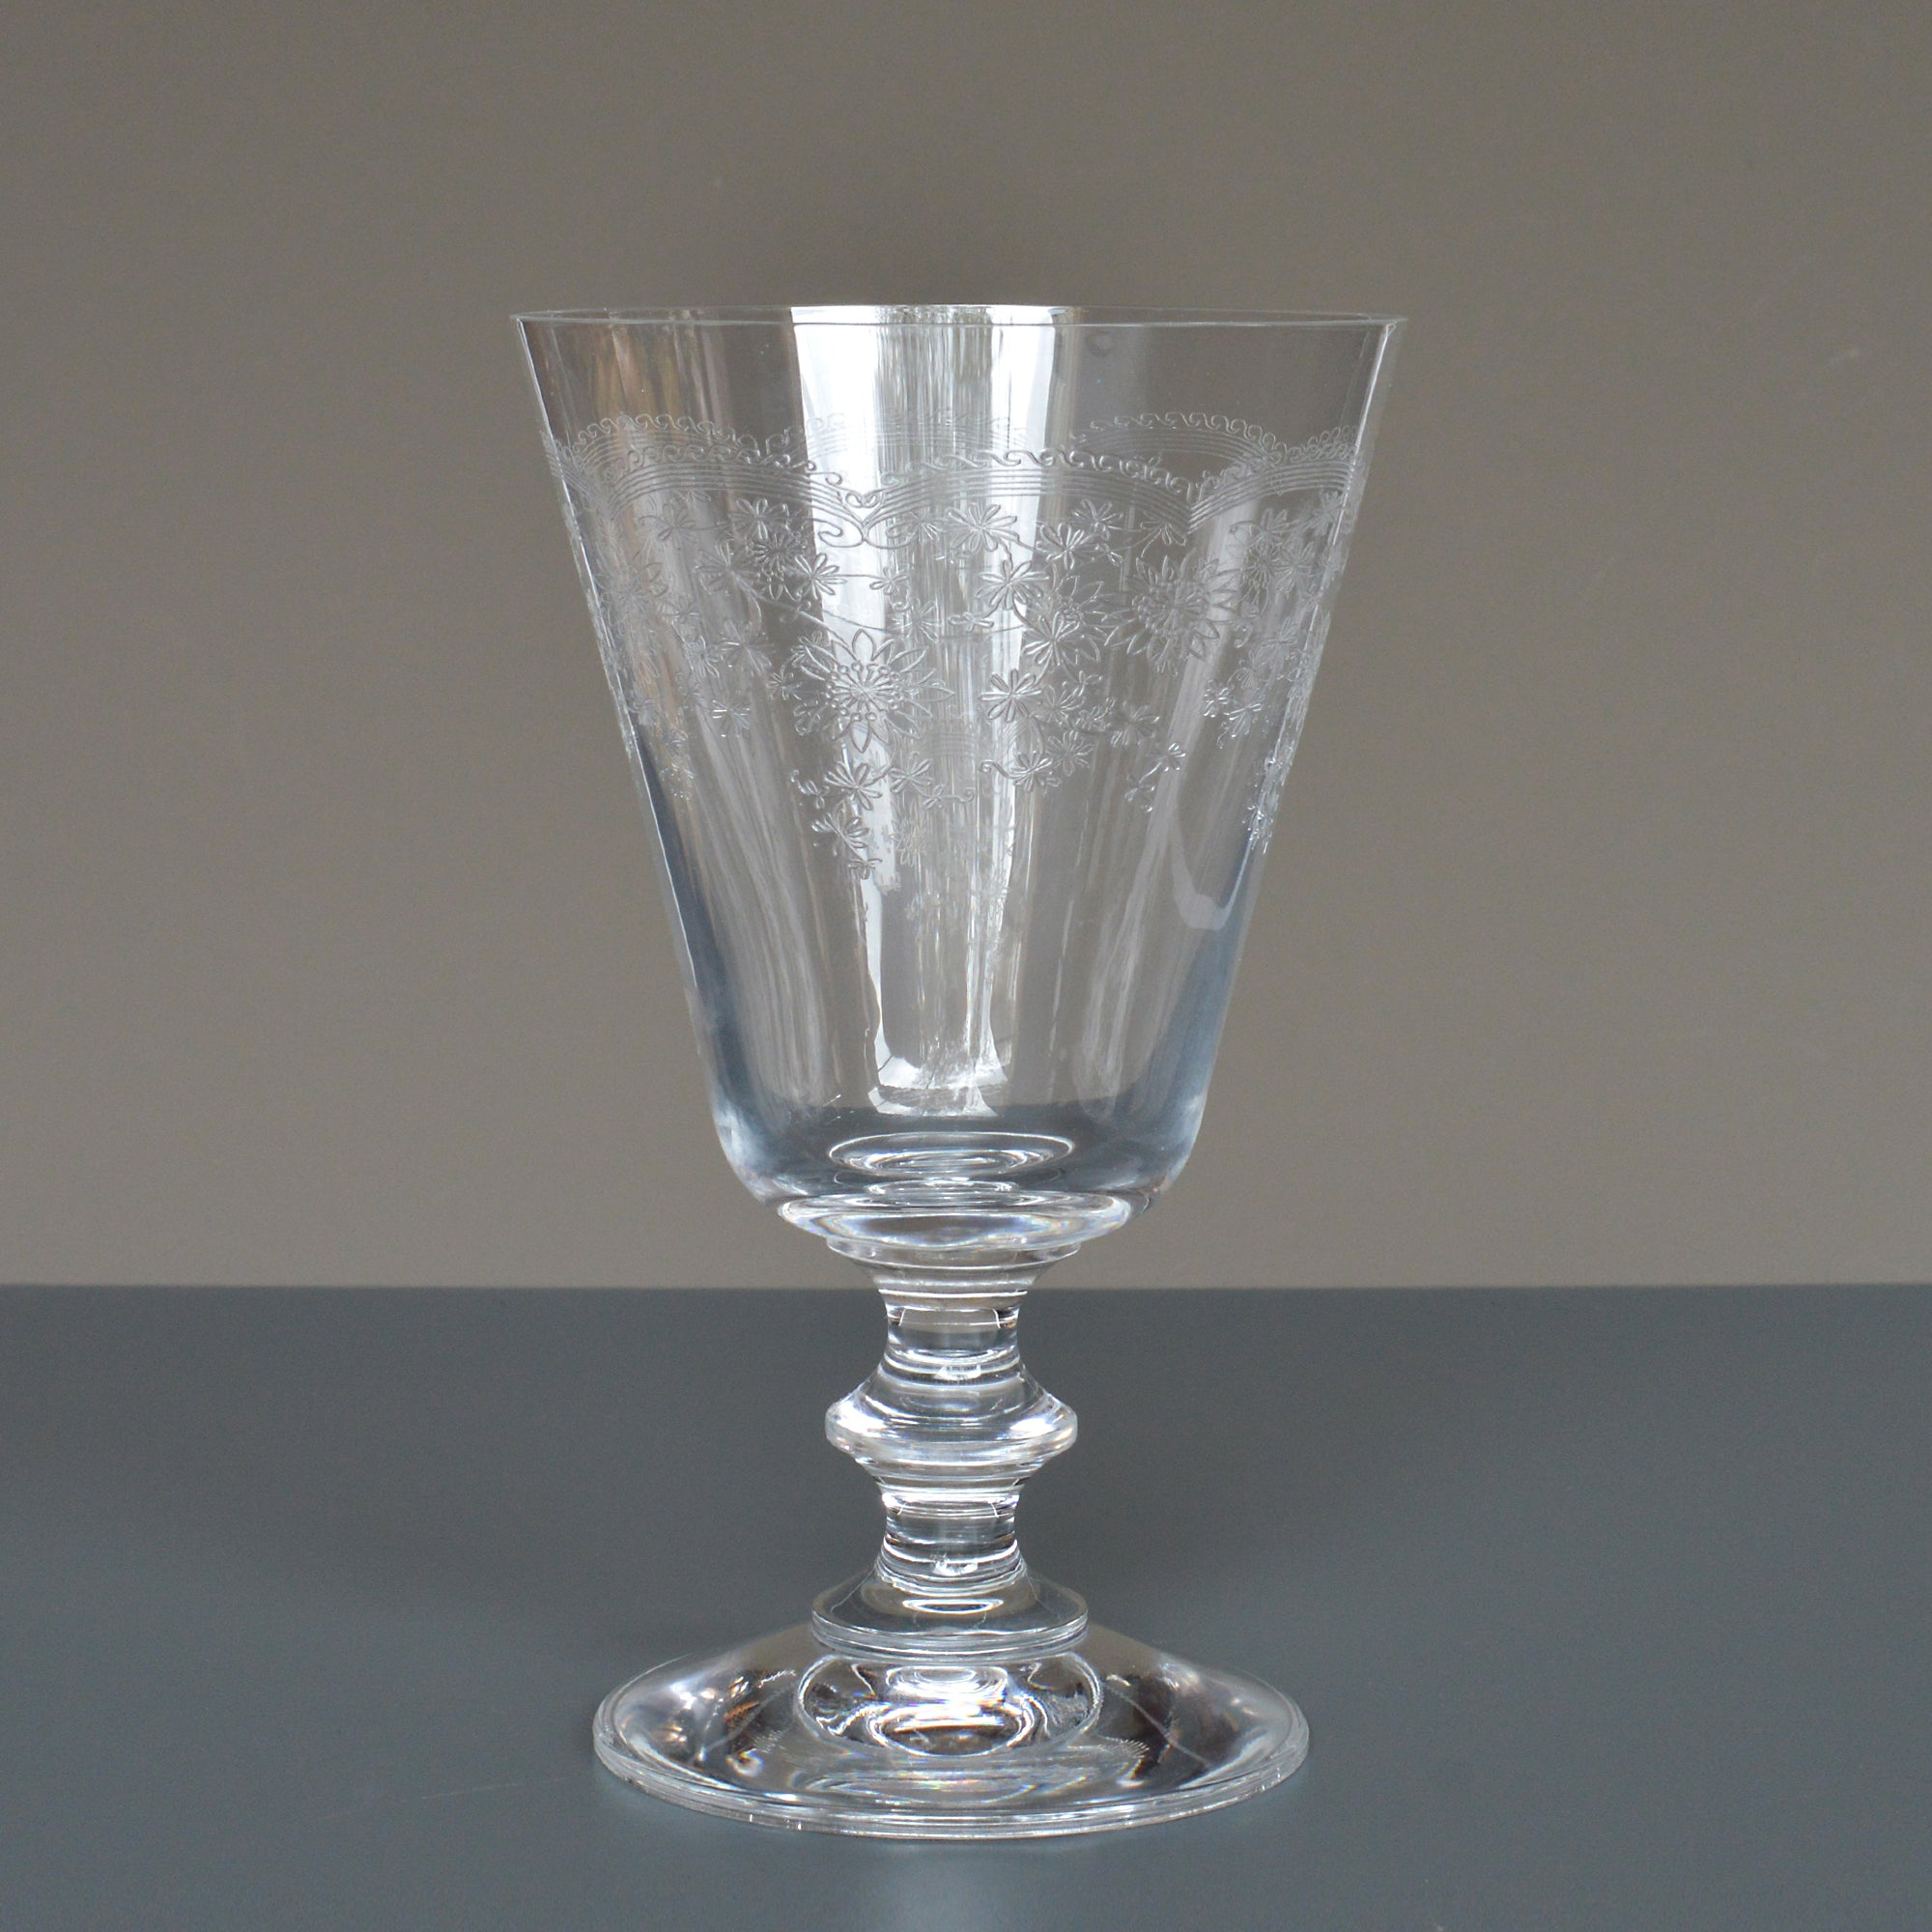 Engraved European Wine Glass - Floral